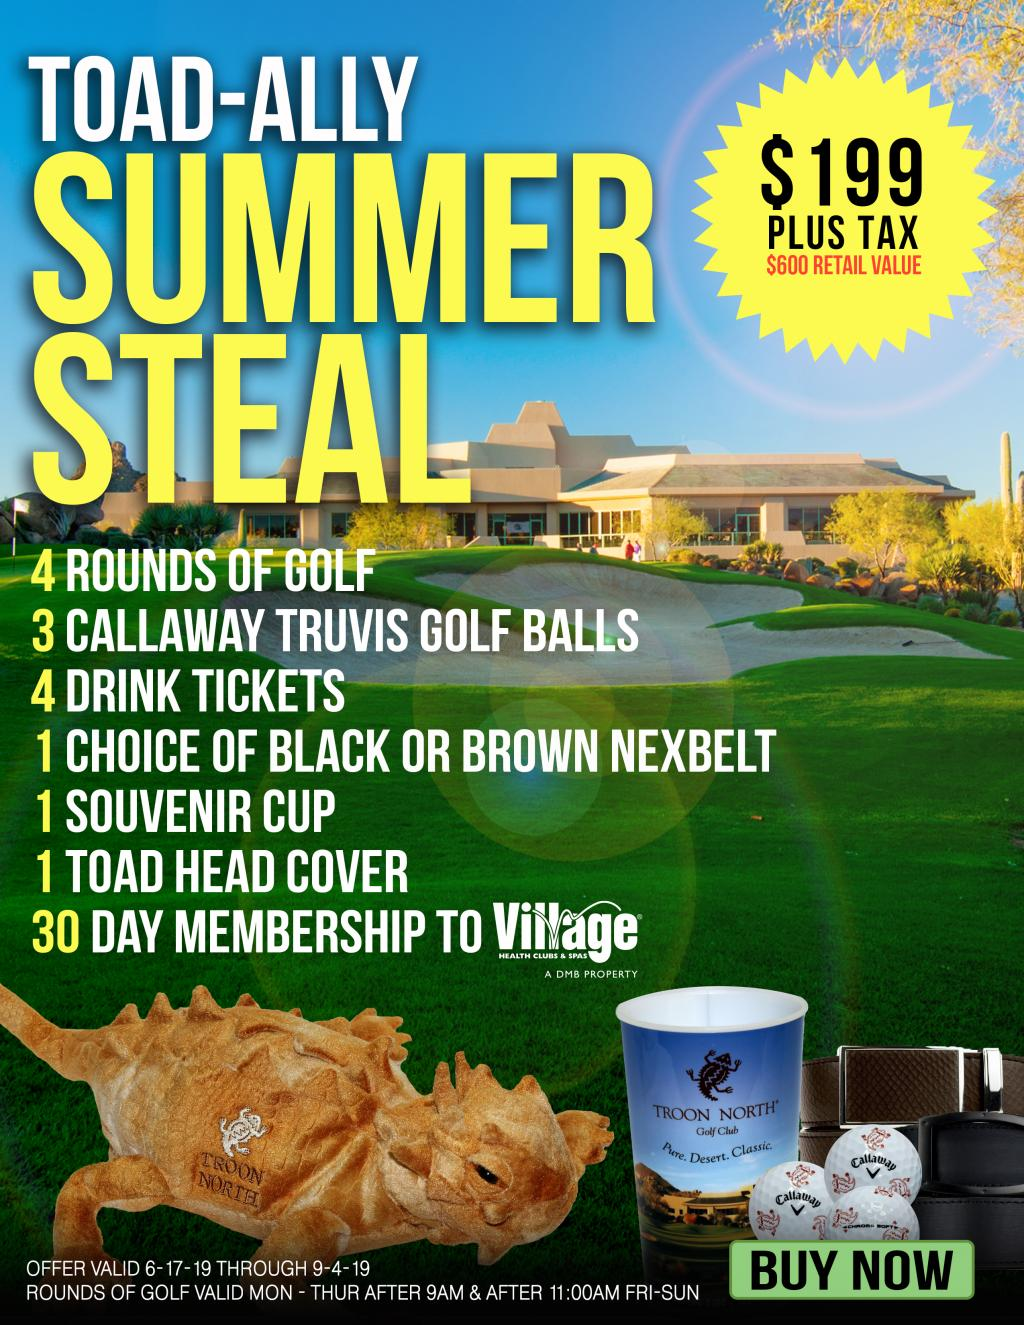 Summer Steal 4 Round Package